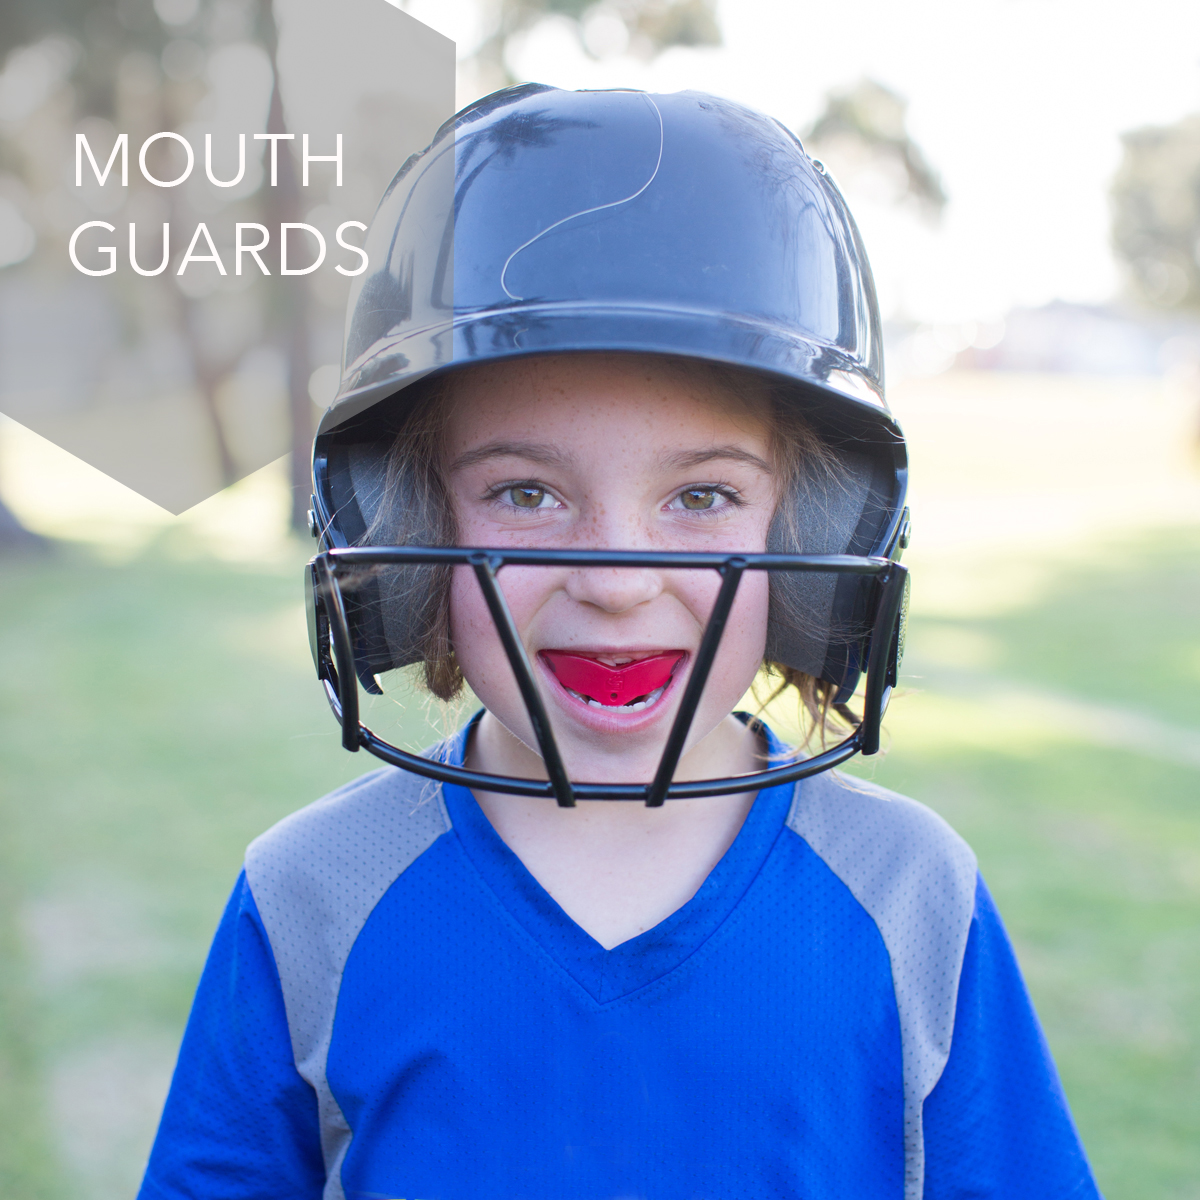 SPRINGFIELD ILLINOIS MOUTH GUARDS.jpg